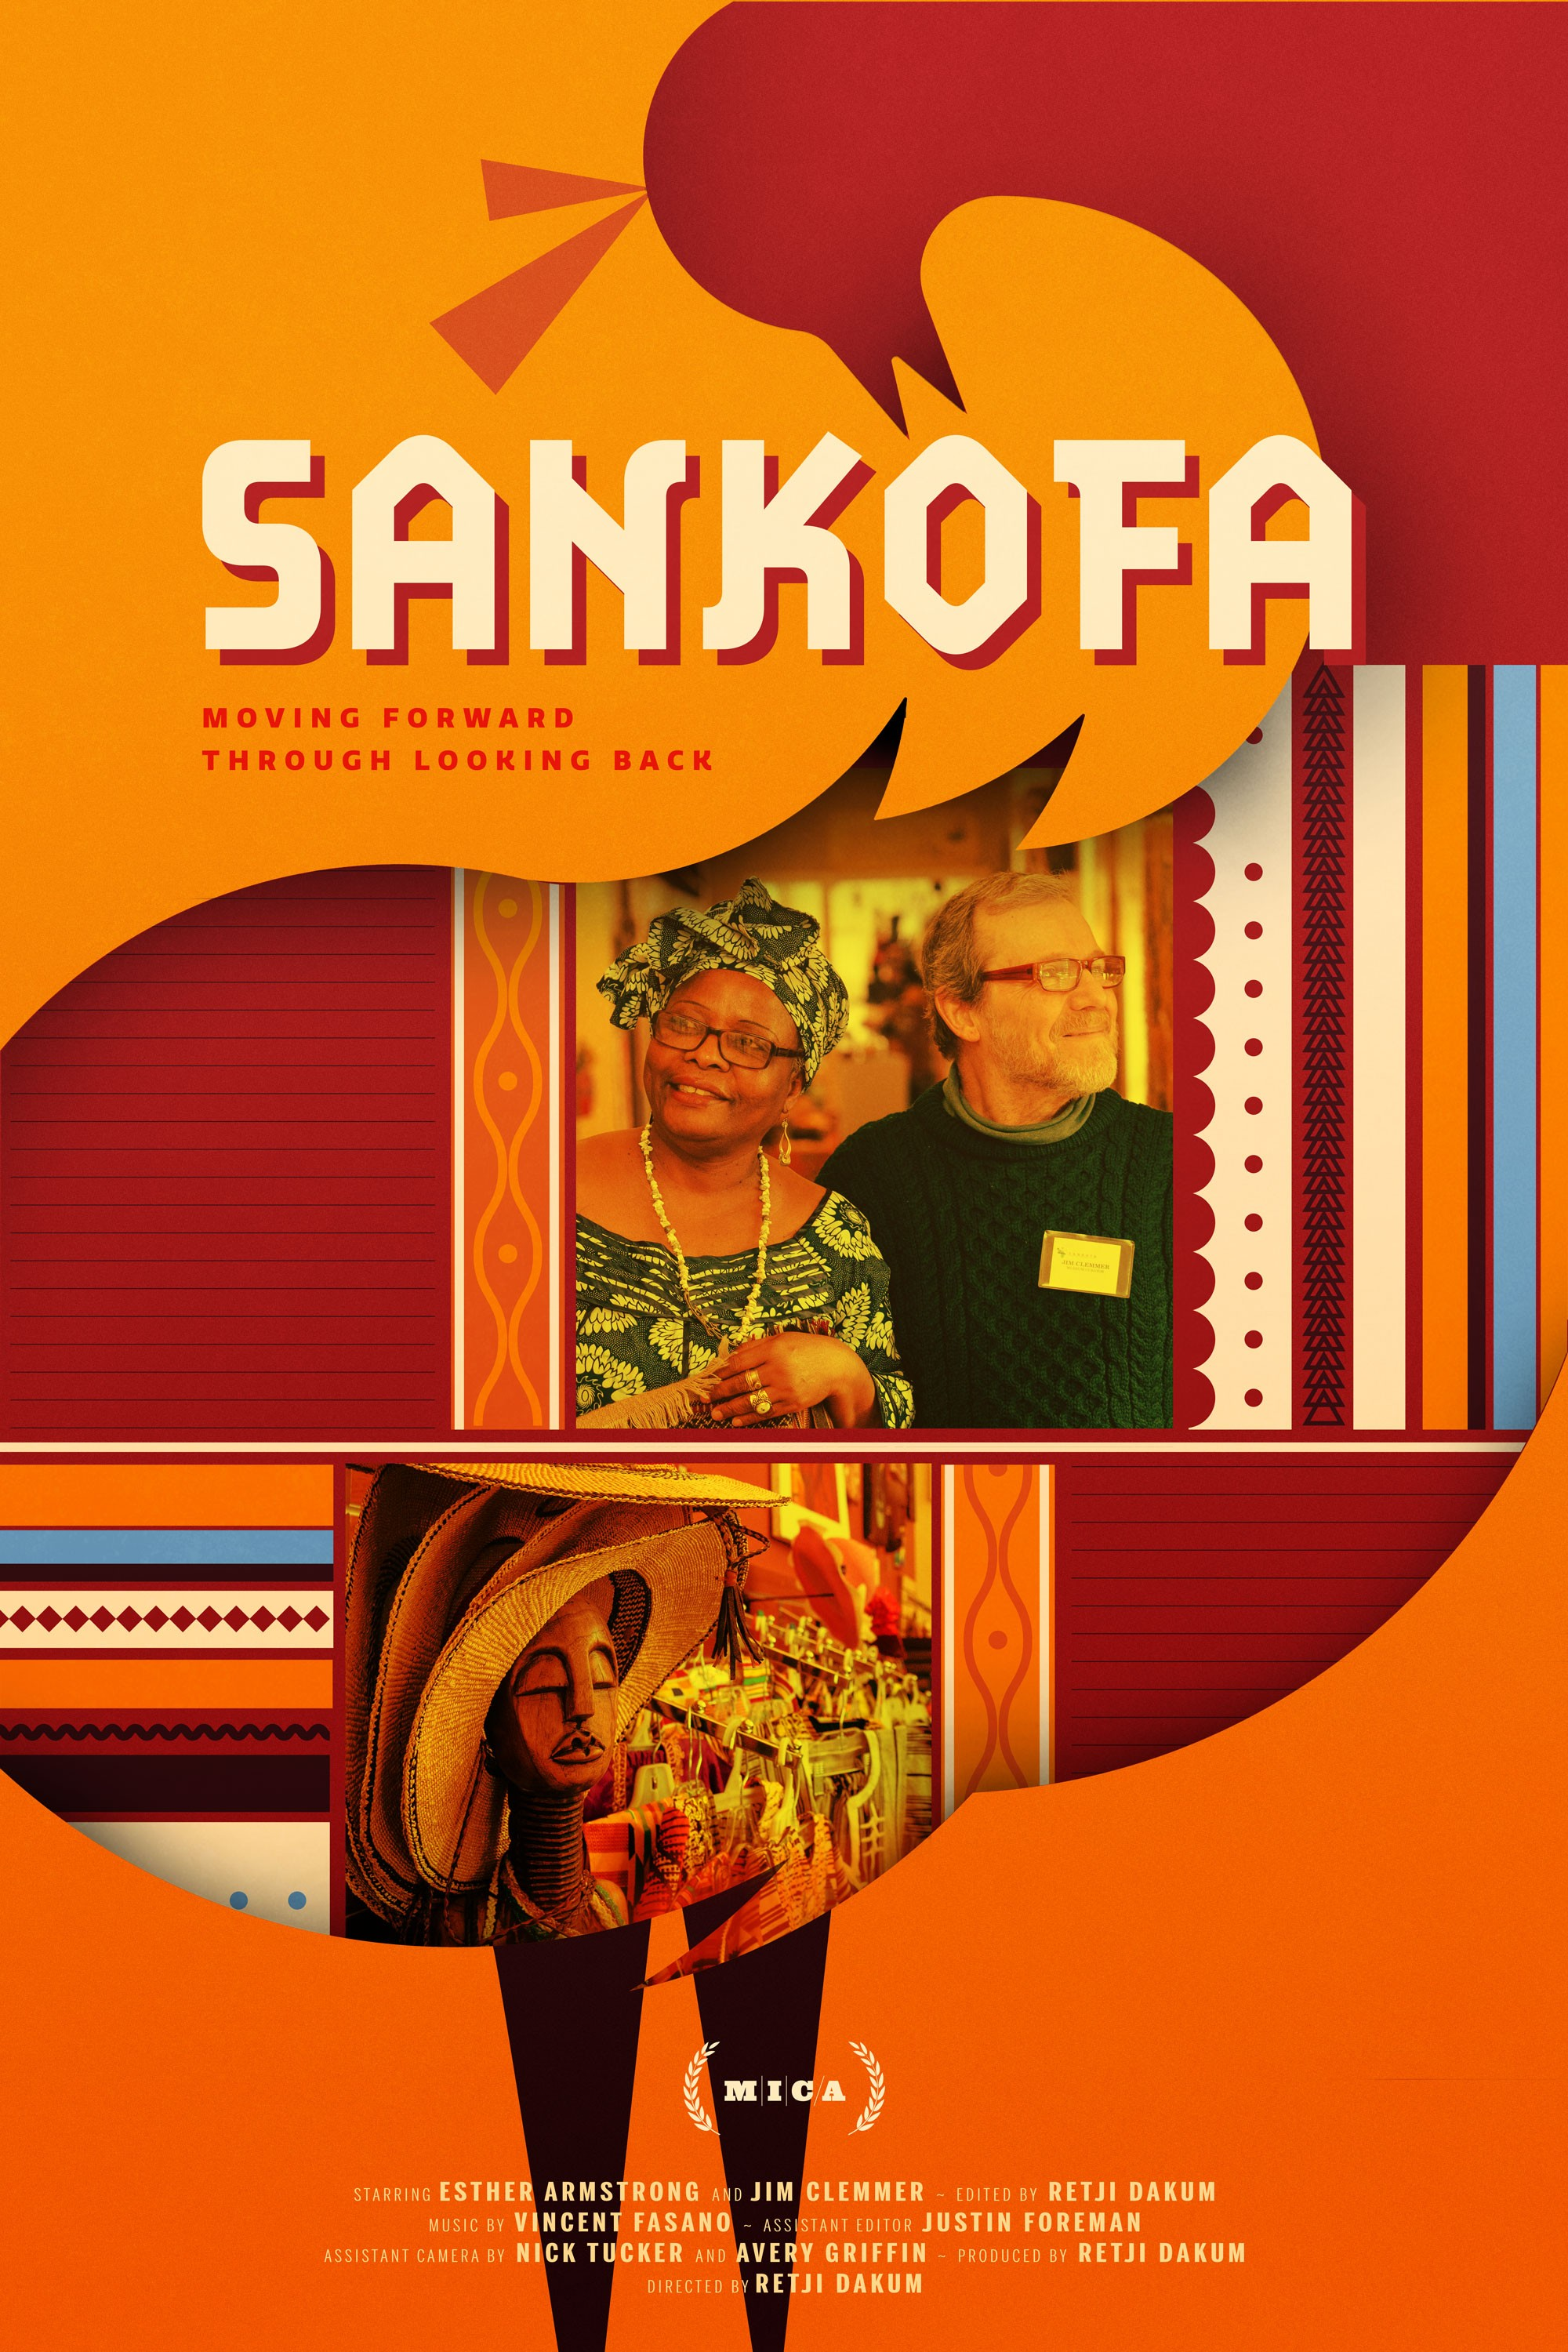 A Nigerian filmmaker living in America for the past ten years searches out spaces that connect him to his African roots. He finds Aunty Kiki, a business-minded Ghanaian woman, and Uncle Jim, an American man who is passionate about African tribal art, who